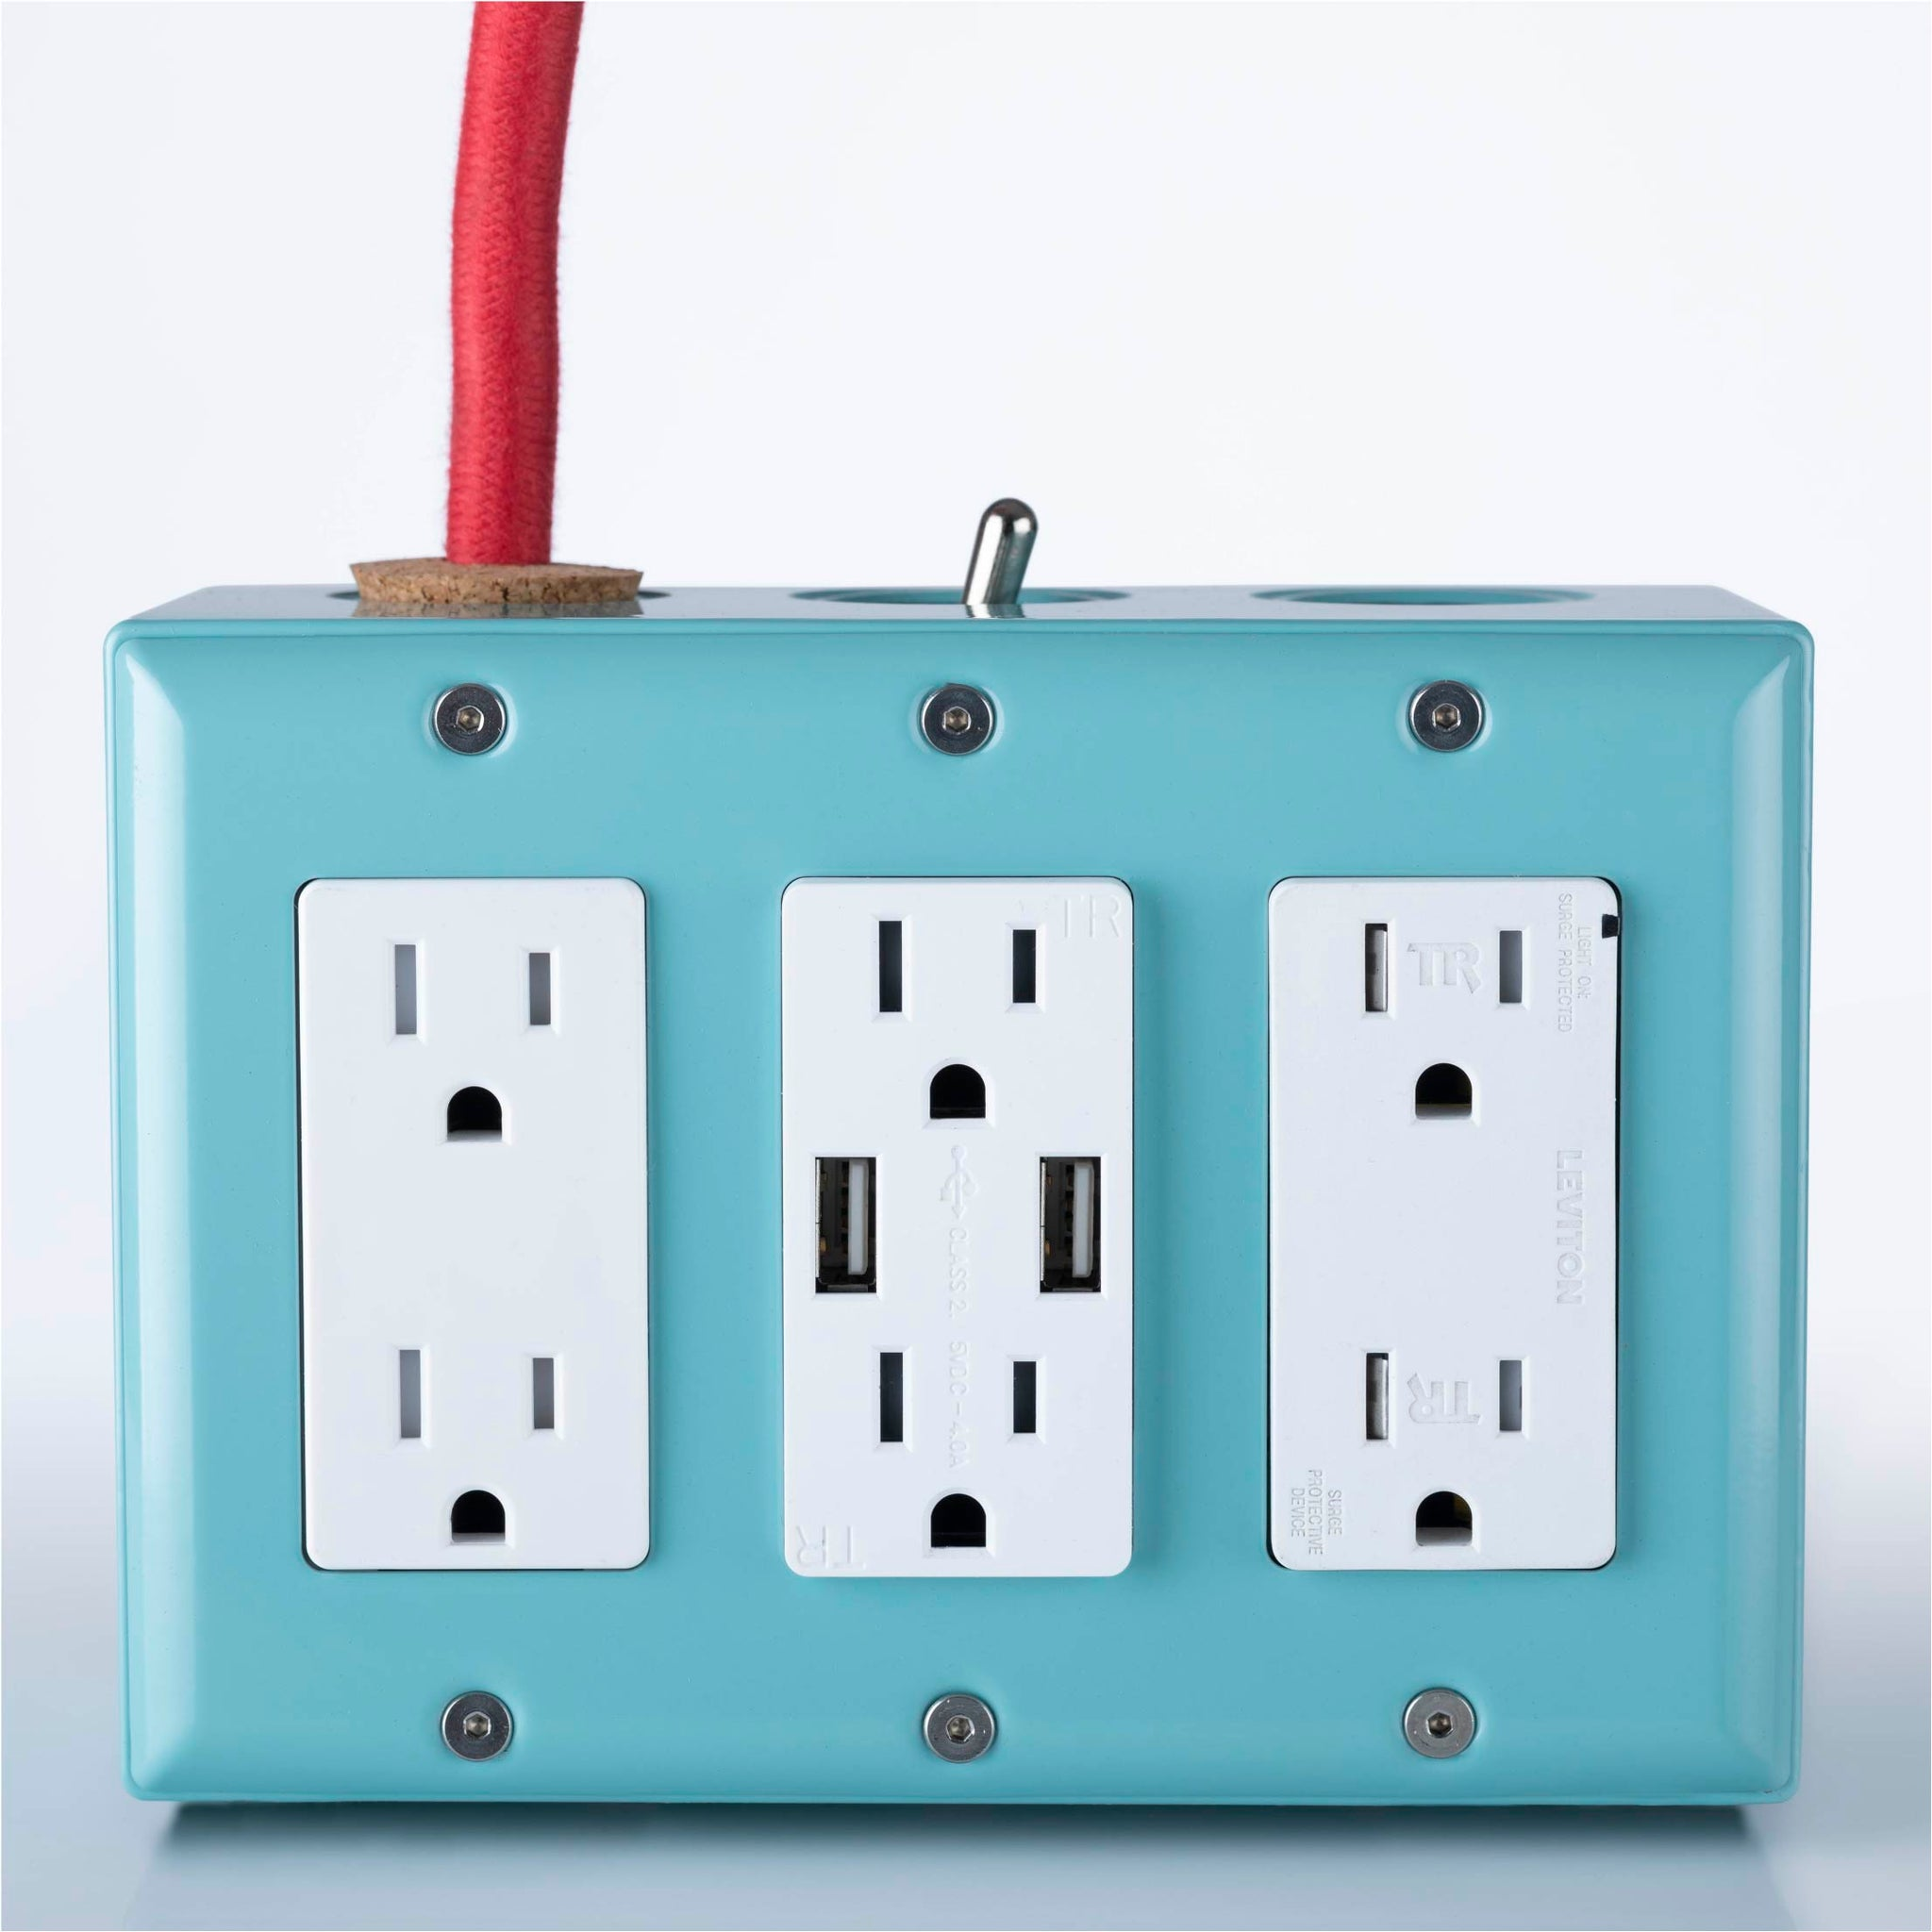 New! 6' Extō Surge 720 Smart Chip Surge-Protected Smart USB 6-Outlet Power Strip Mint